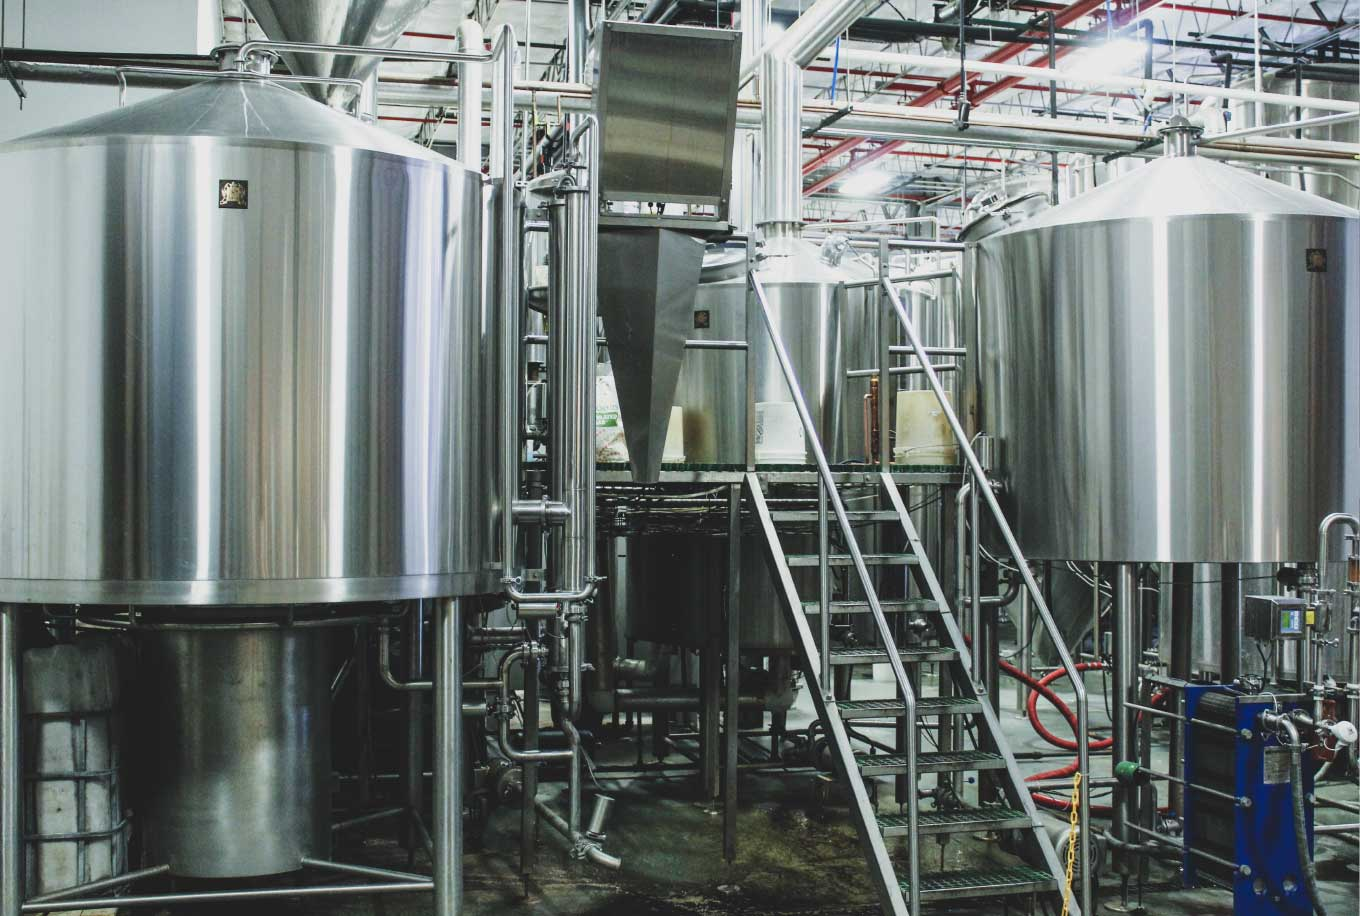 Tanks at Community Brewery